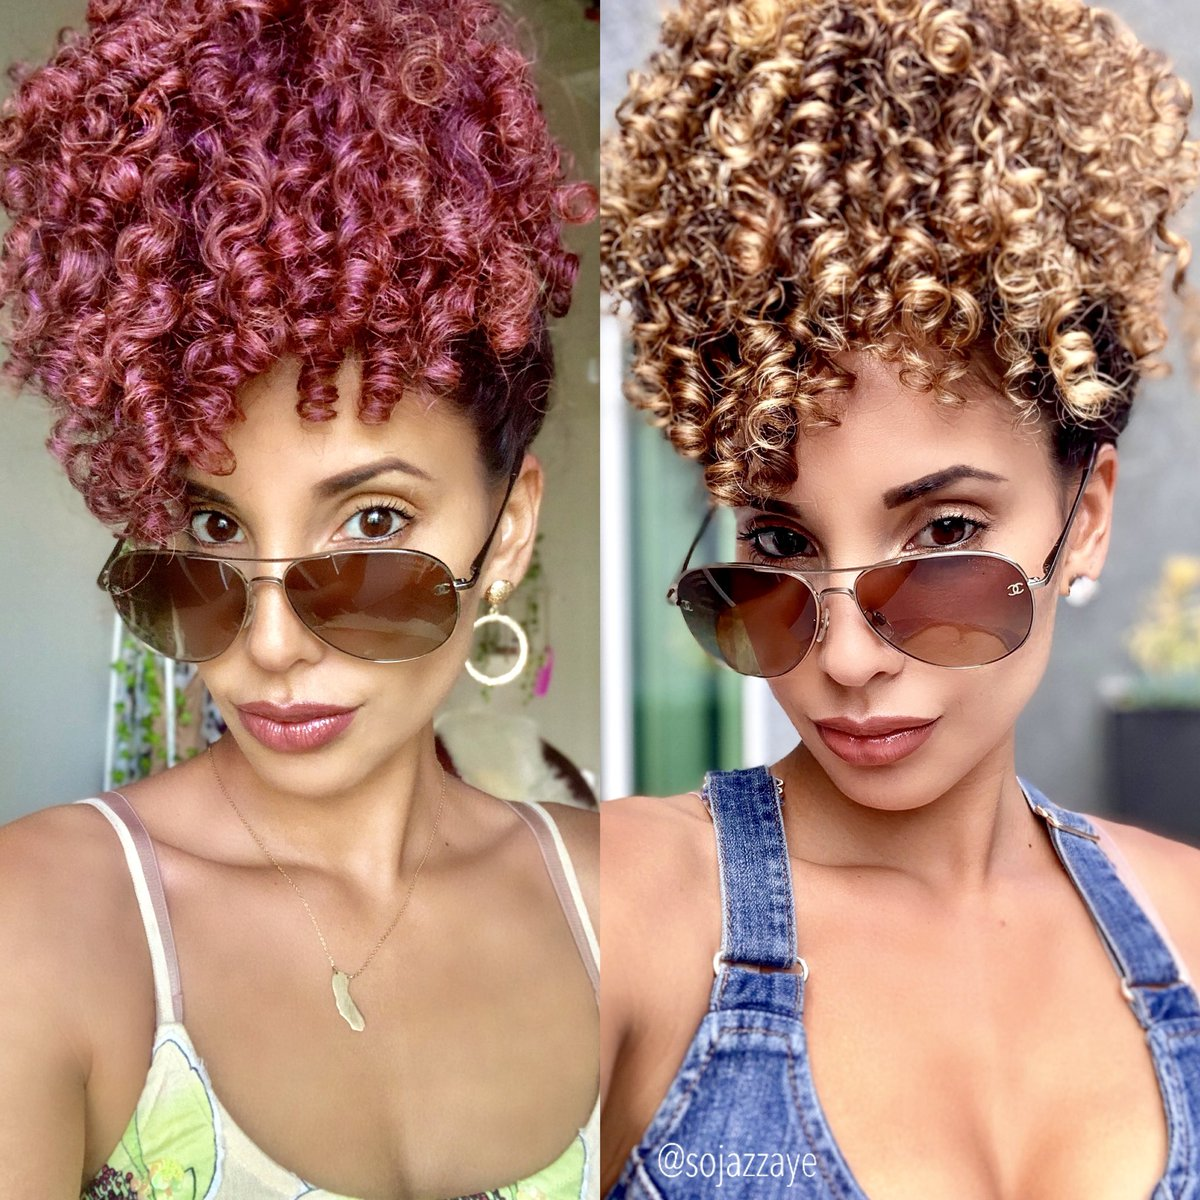 Sojazzaye On Twitter How Do You Like Your Pineapples Rose Or Gold Hairpaintwax